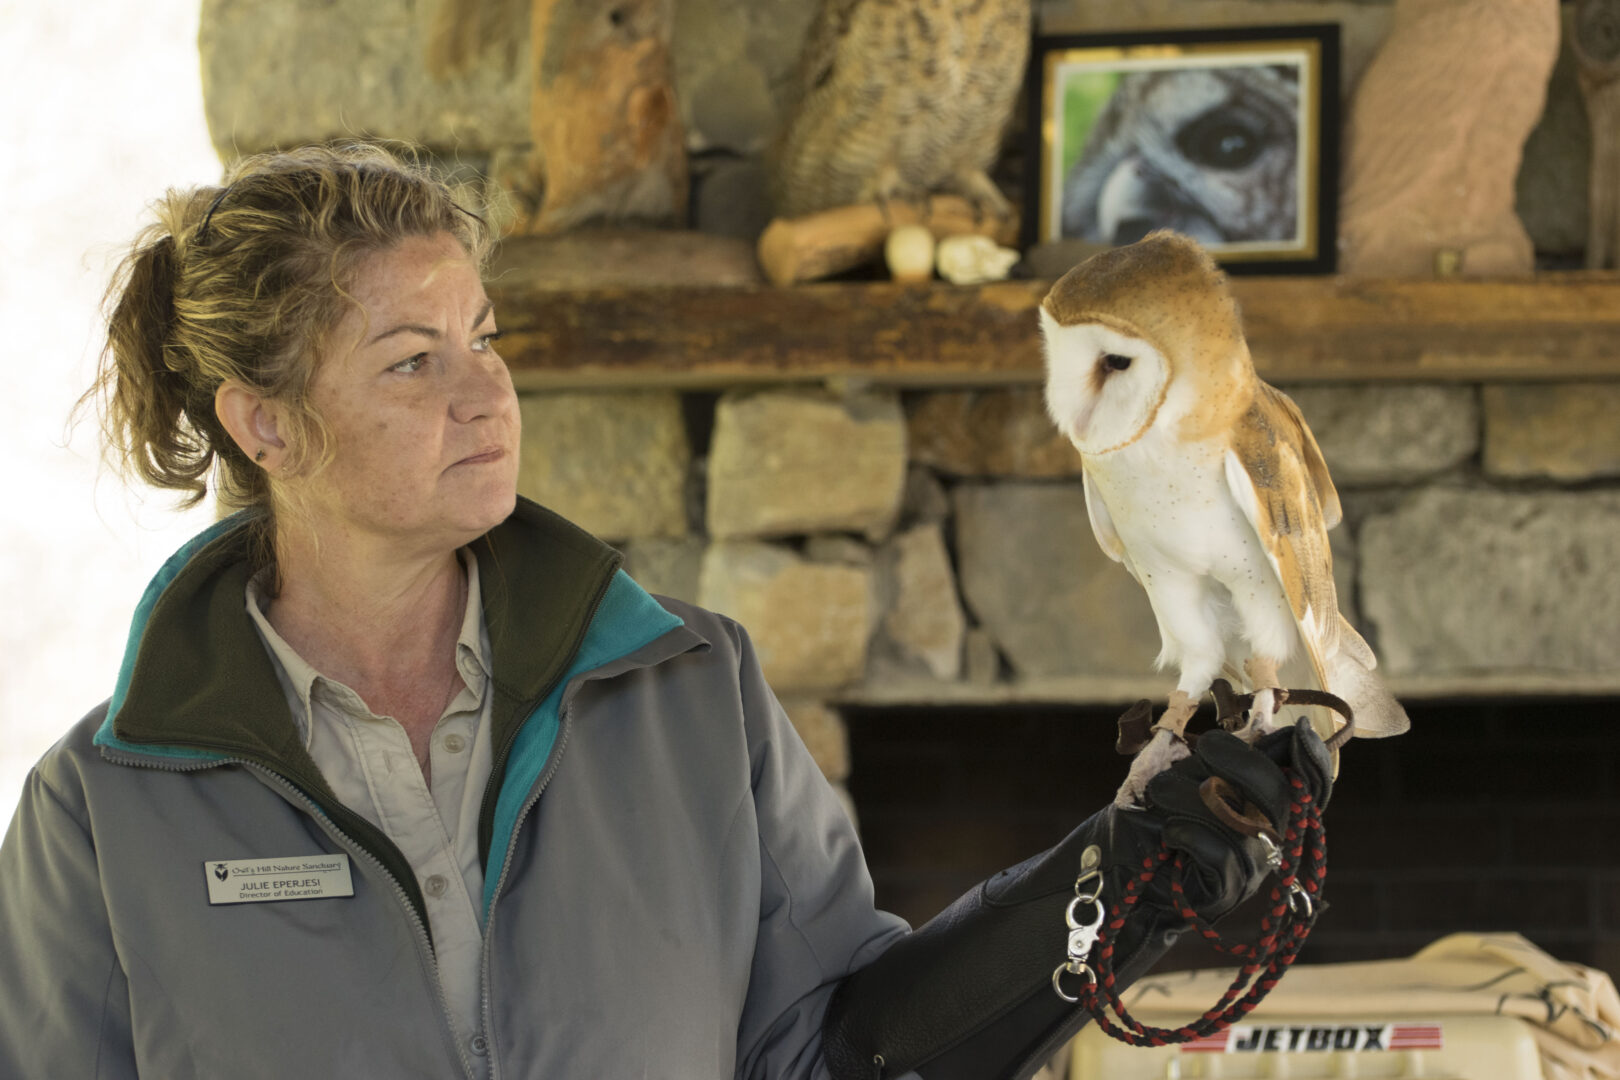 Owl Day at Owl's Hill, a fun event for all ages in Brentwood, TN, Franklin, TN and Williamson County, TN.